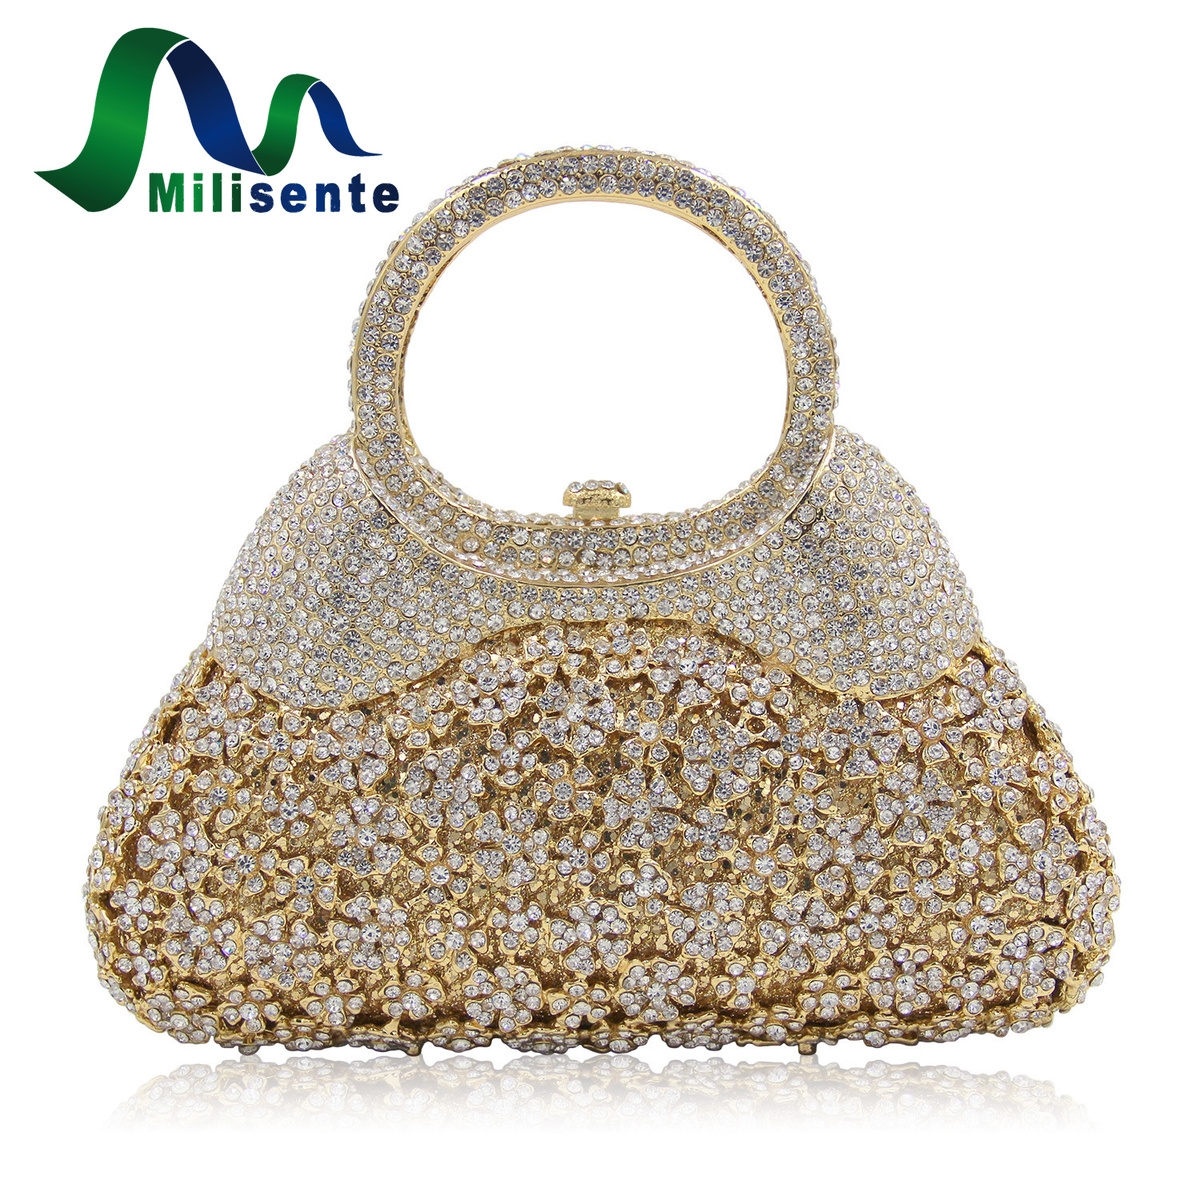 Milisente Luxury Flower Crystal Evening Bags Special Design Handbag Girl's Party Purse Wedding Clutch Shoulder With Chain Gold milisente 2016 hot sale handbag luxury crystal evening bags special design for party gold